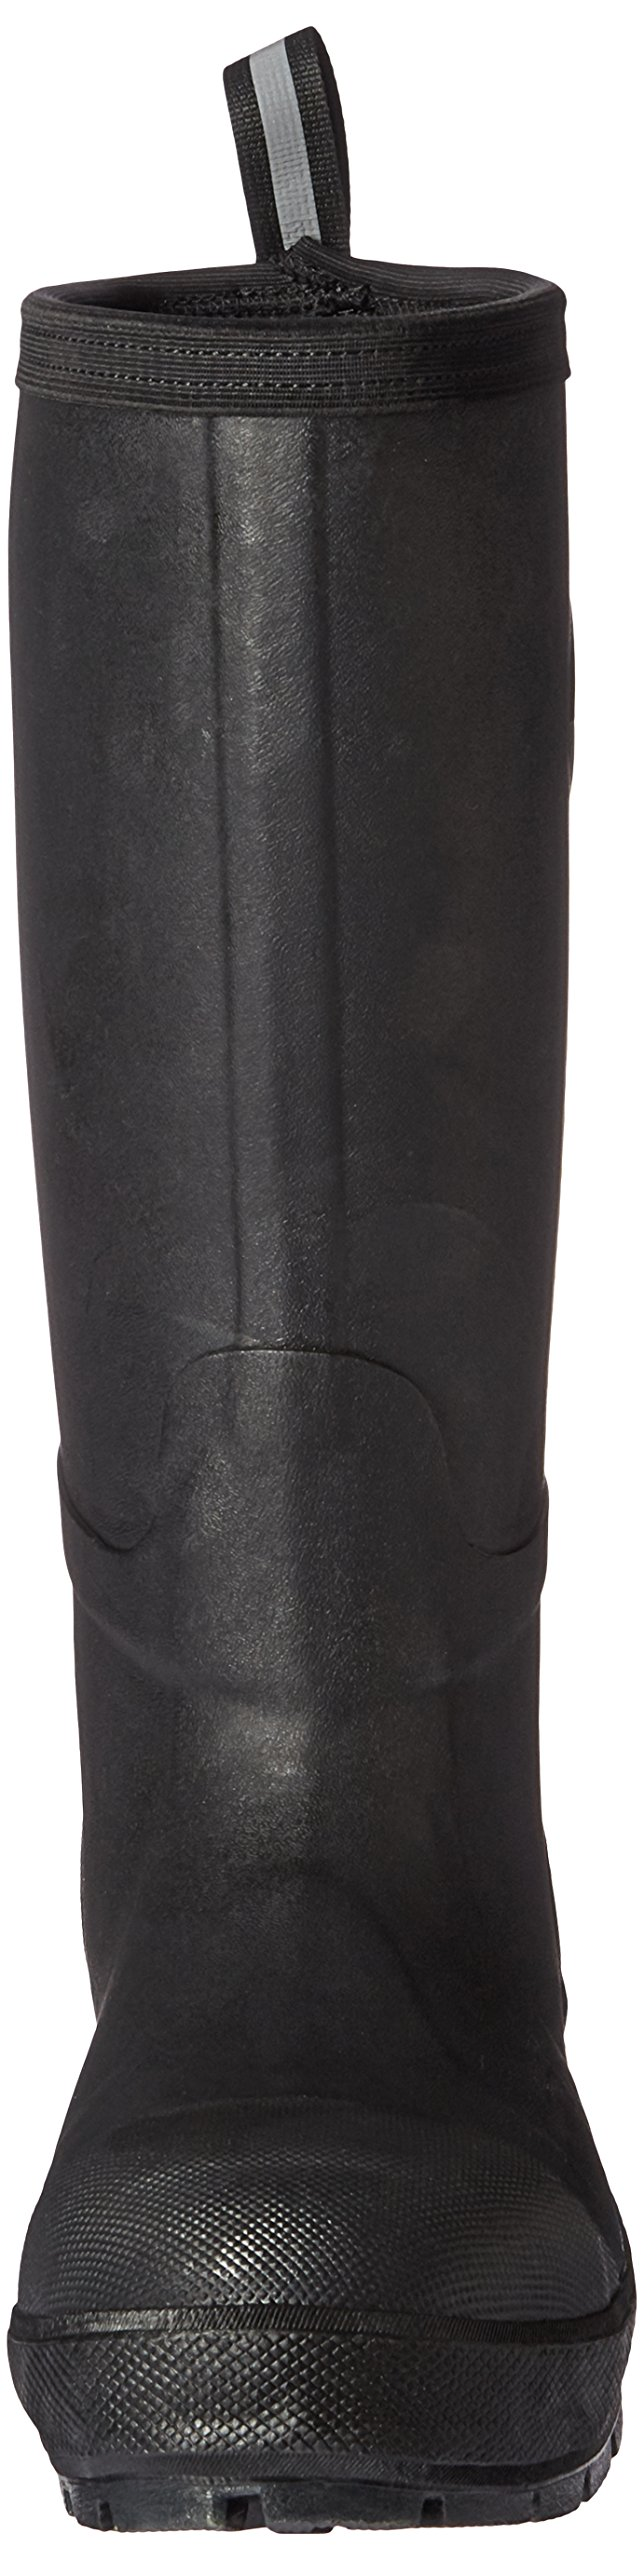 Muck Boot Men's Chore Resistant Tall Steel Toe Work Boot, Black, 10 US/10-10.5 M US by Muck Boot (Image #4)